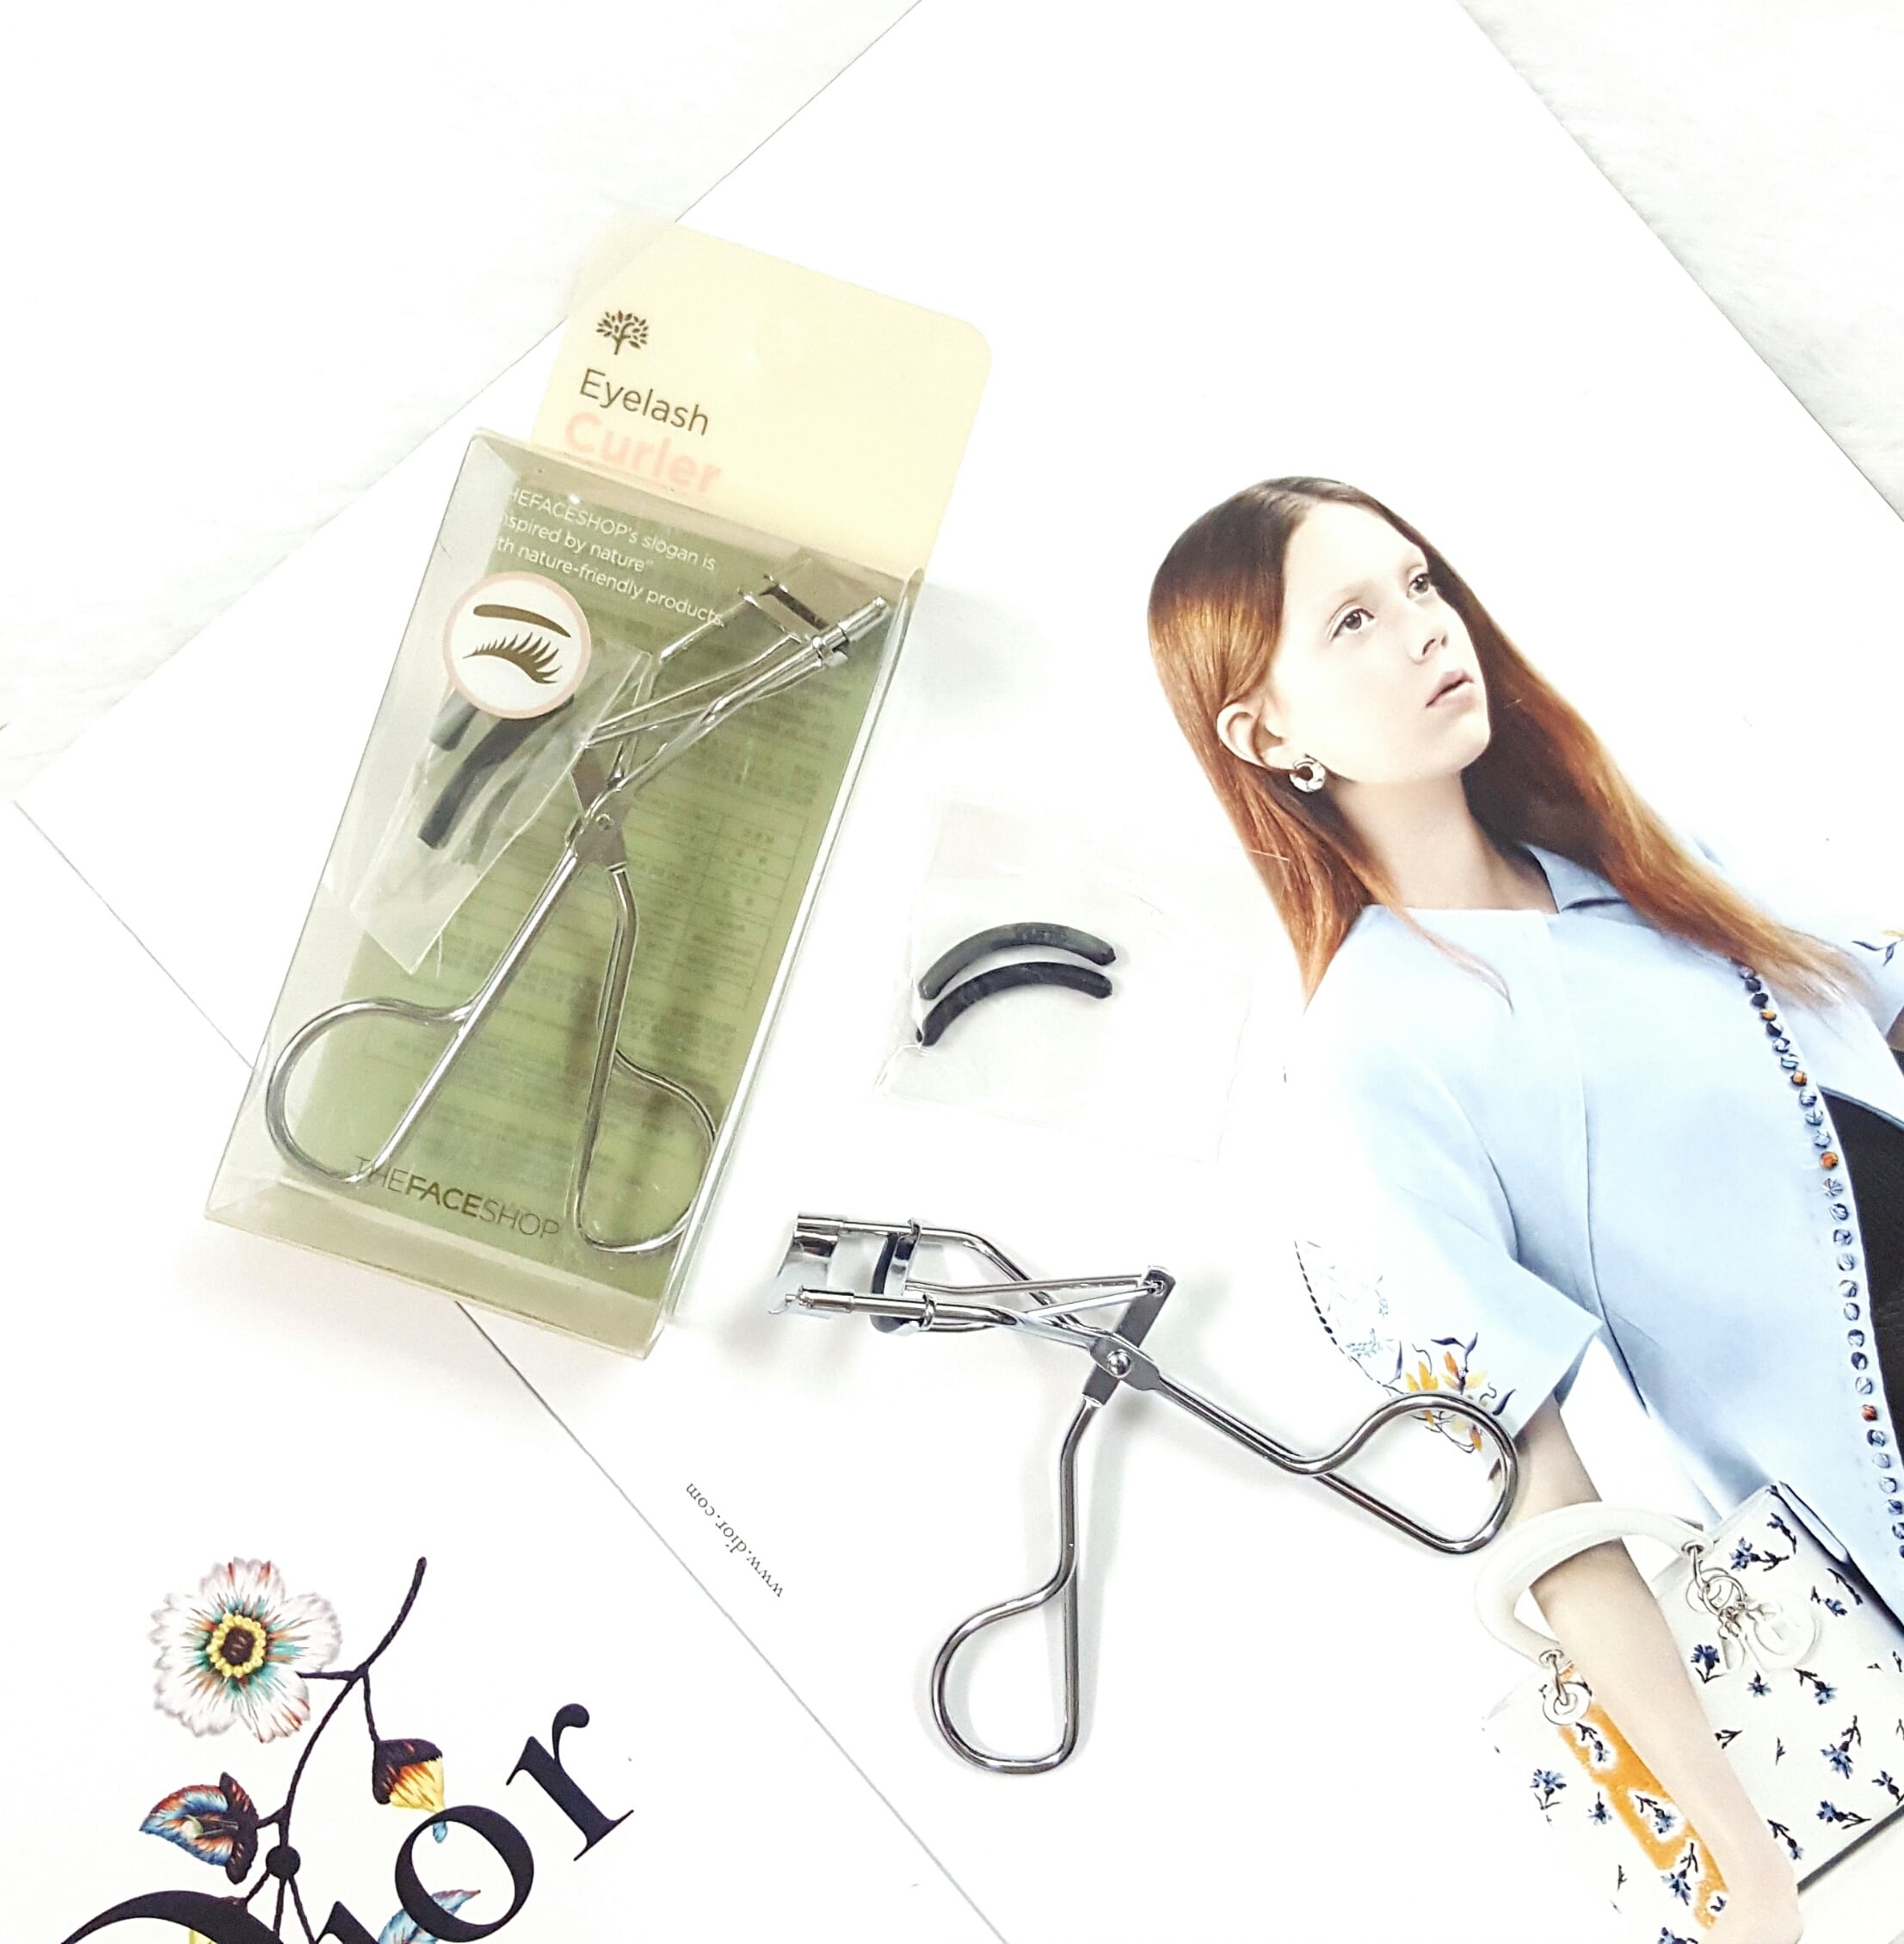 mascara-bam-mi-the-face-shop-daily-beauty-tools-eyelash-curler-1108